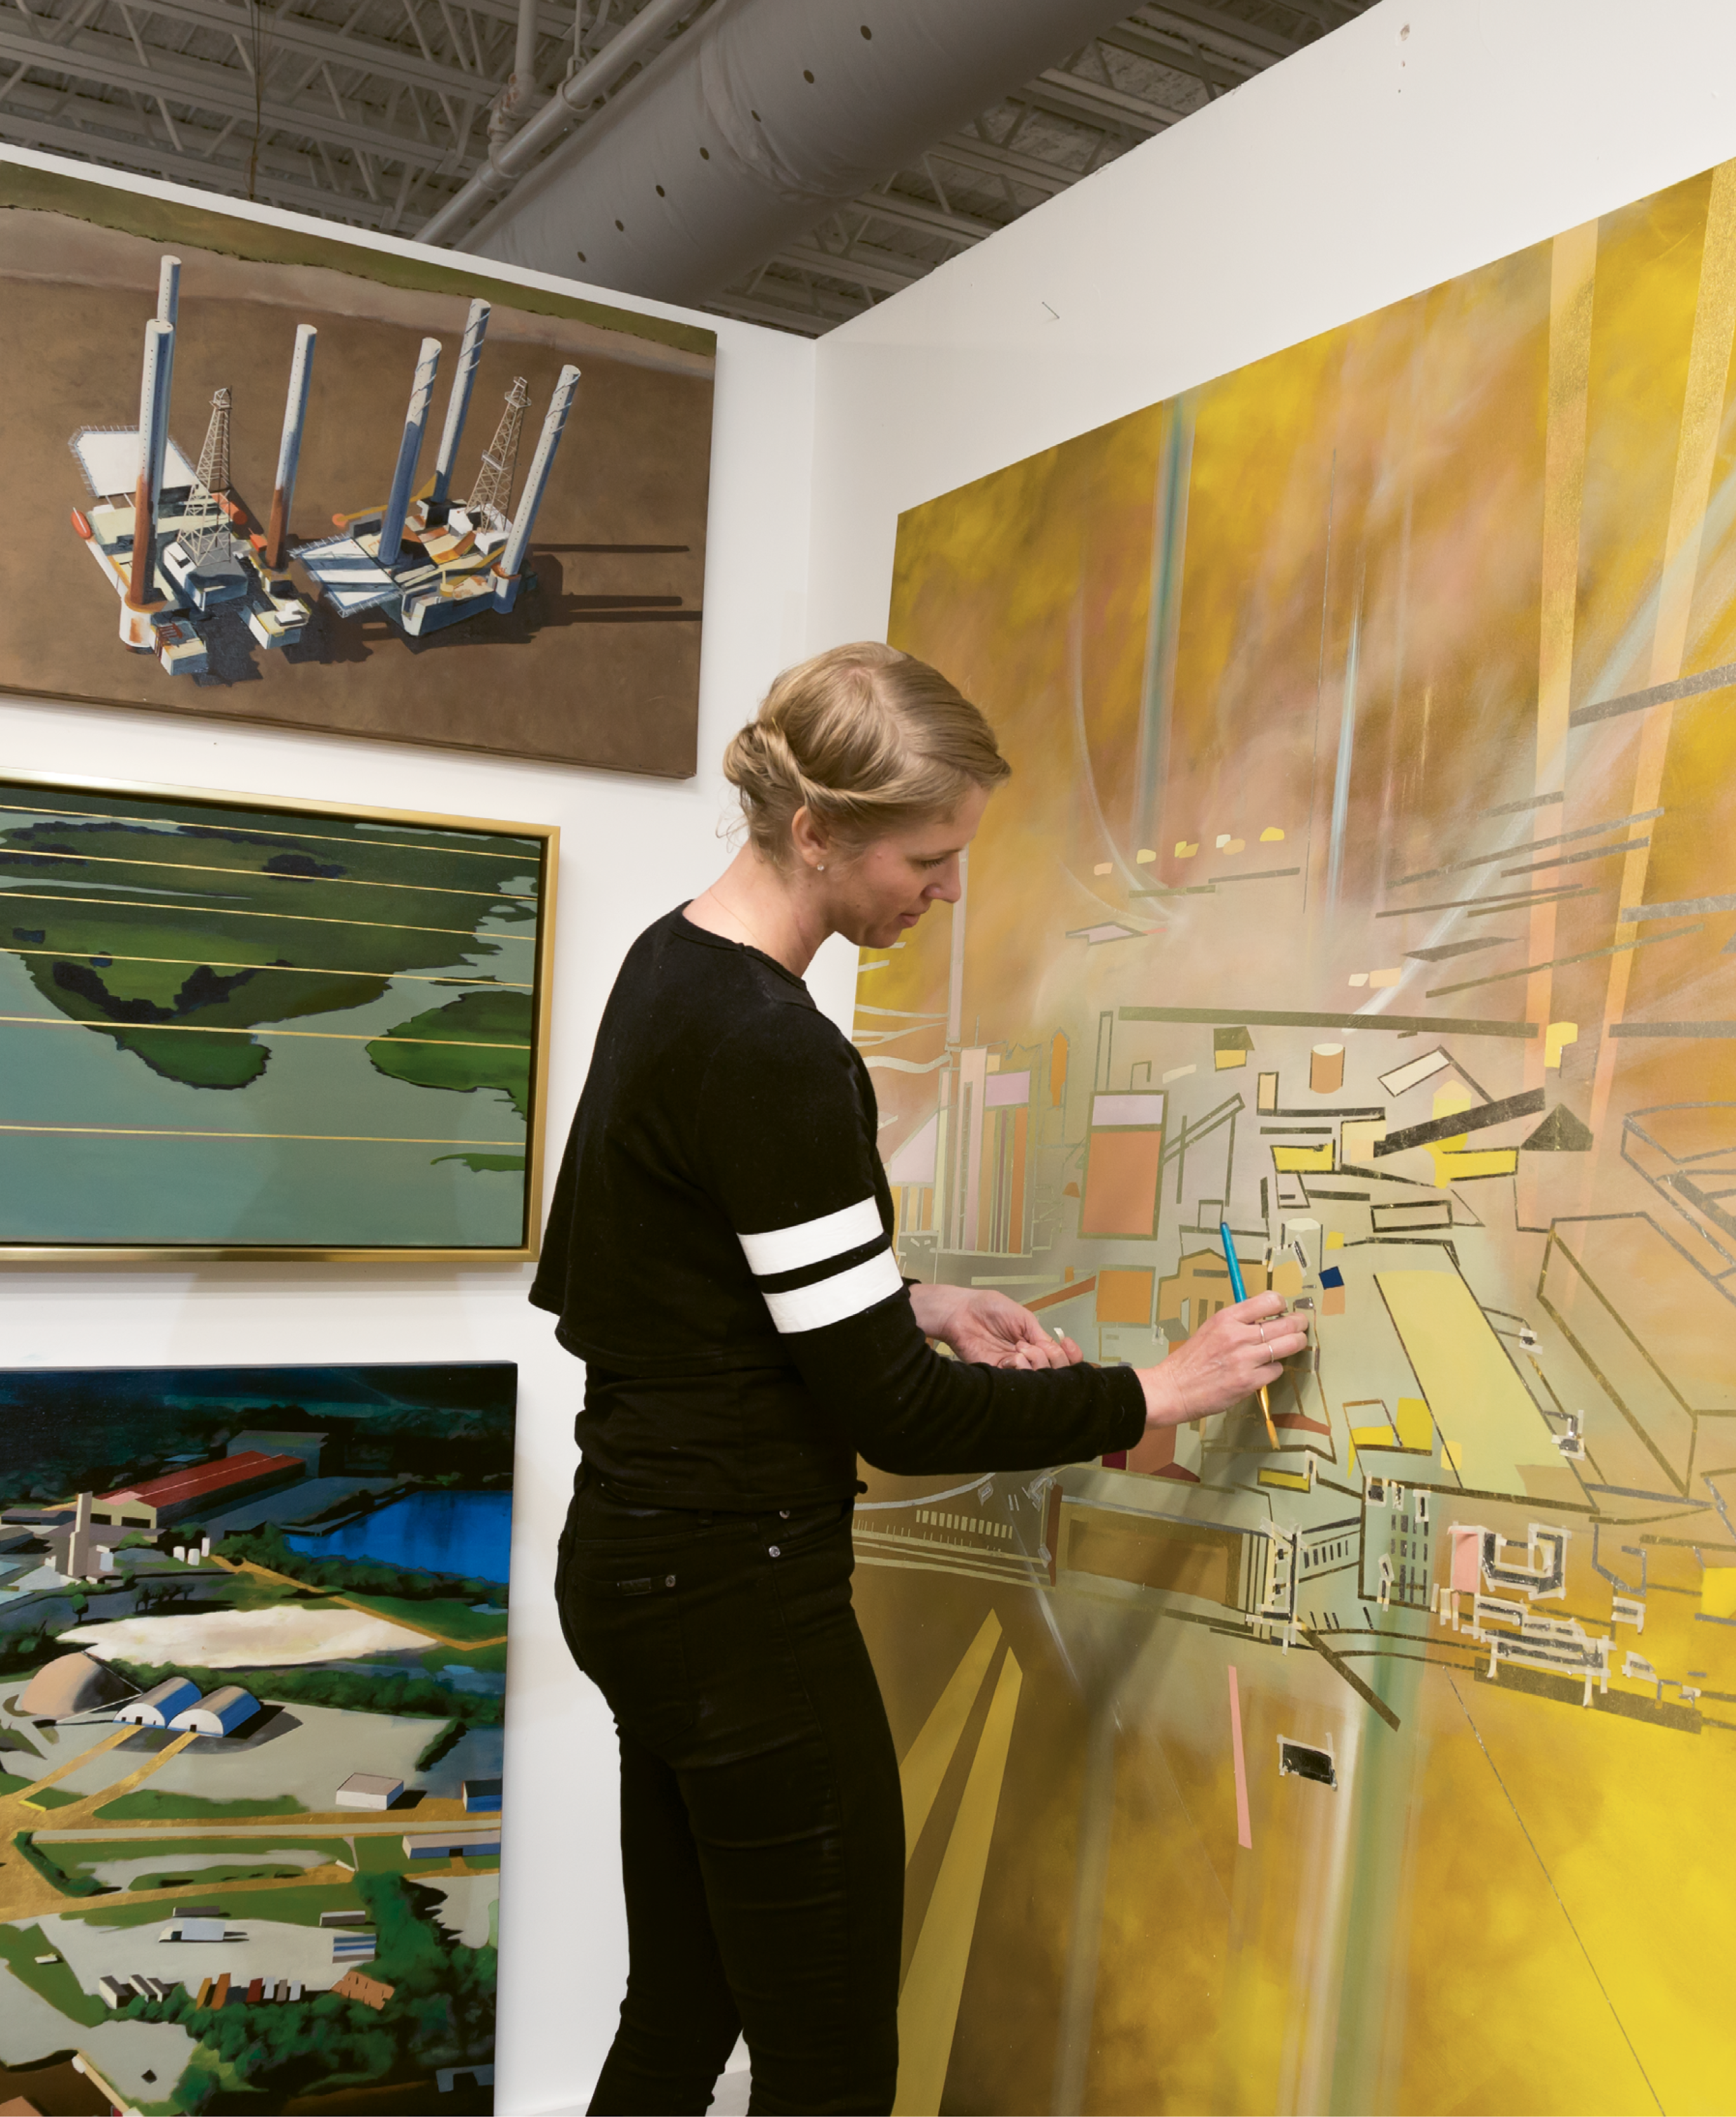 Power in Numbers: As part of its expansion, Redux can offer affordable studio space to more artists, including Kate Hooray Osmond, shown here. The sense of camaraderie and support nurtured among fellow artists is one of many intangible benefits.